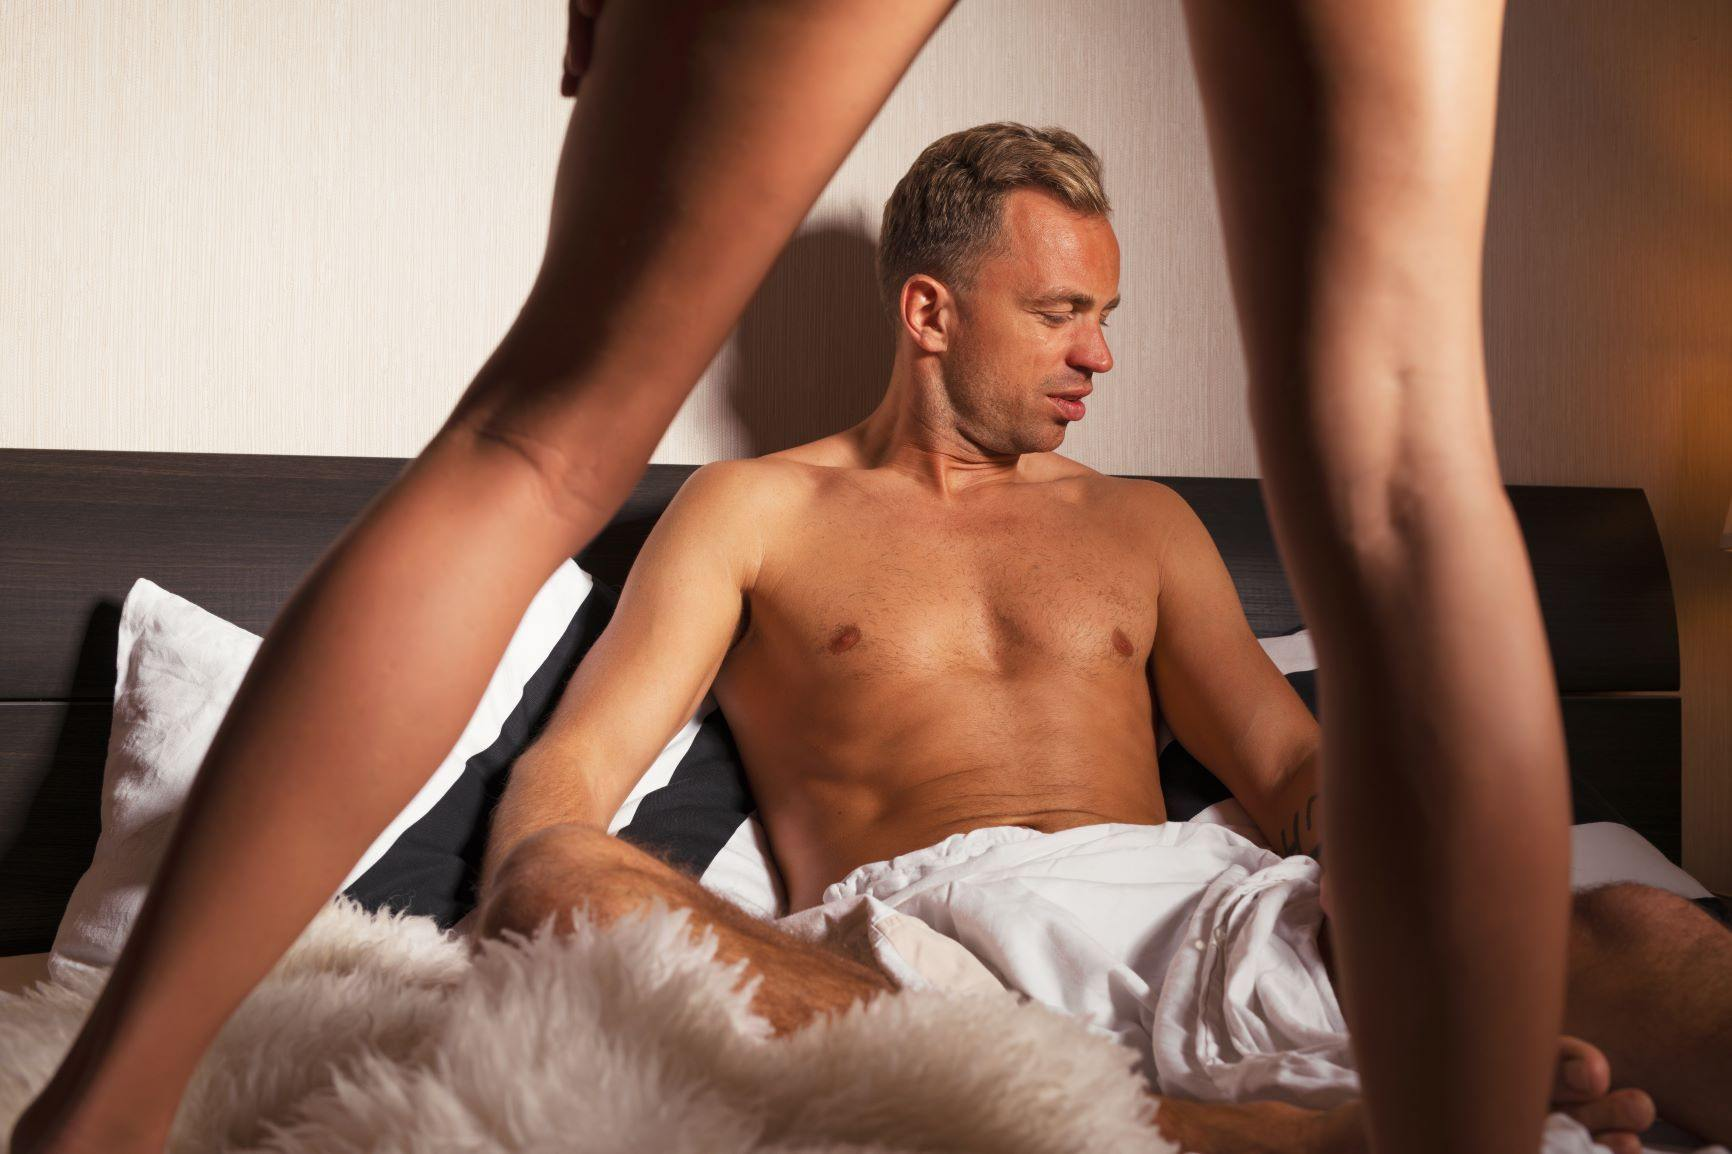 Man sitting in bed without shirt and woman's bare legs in forefront